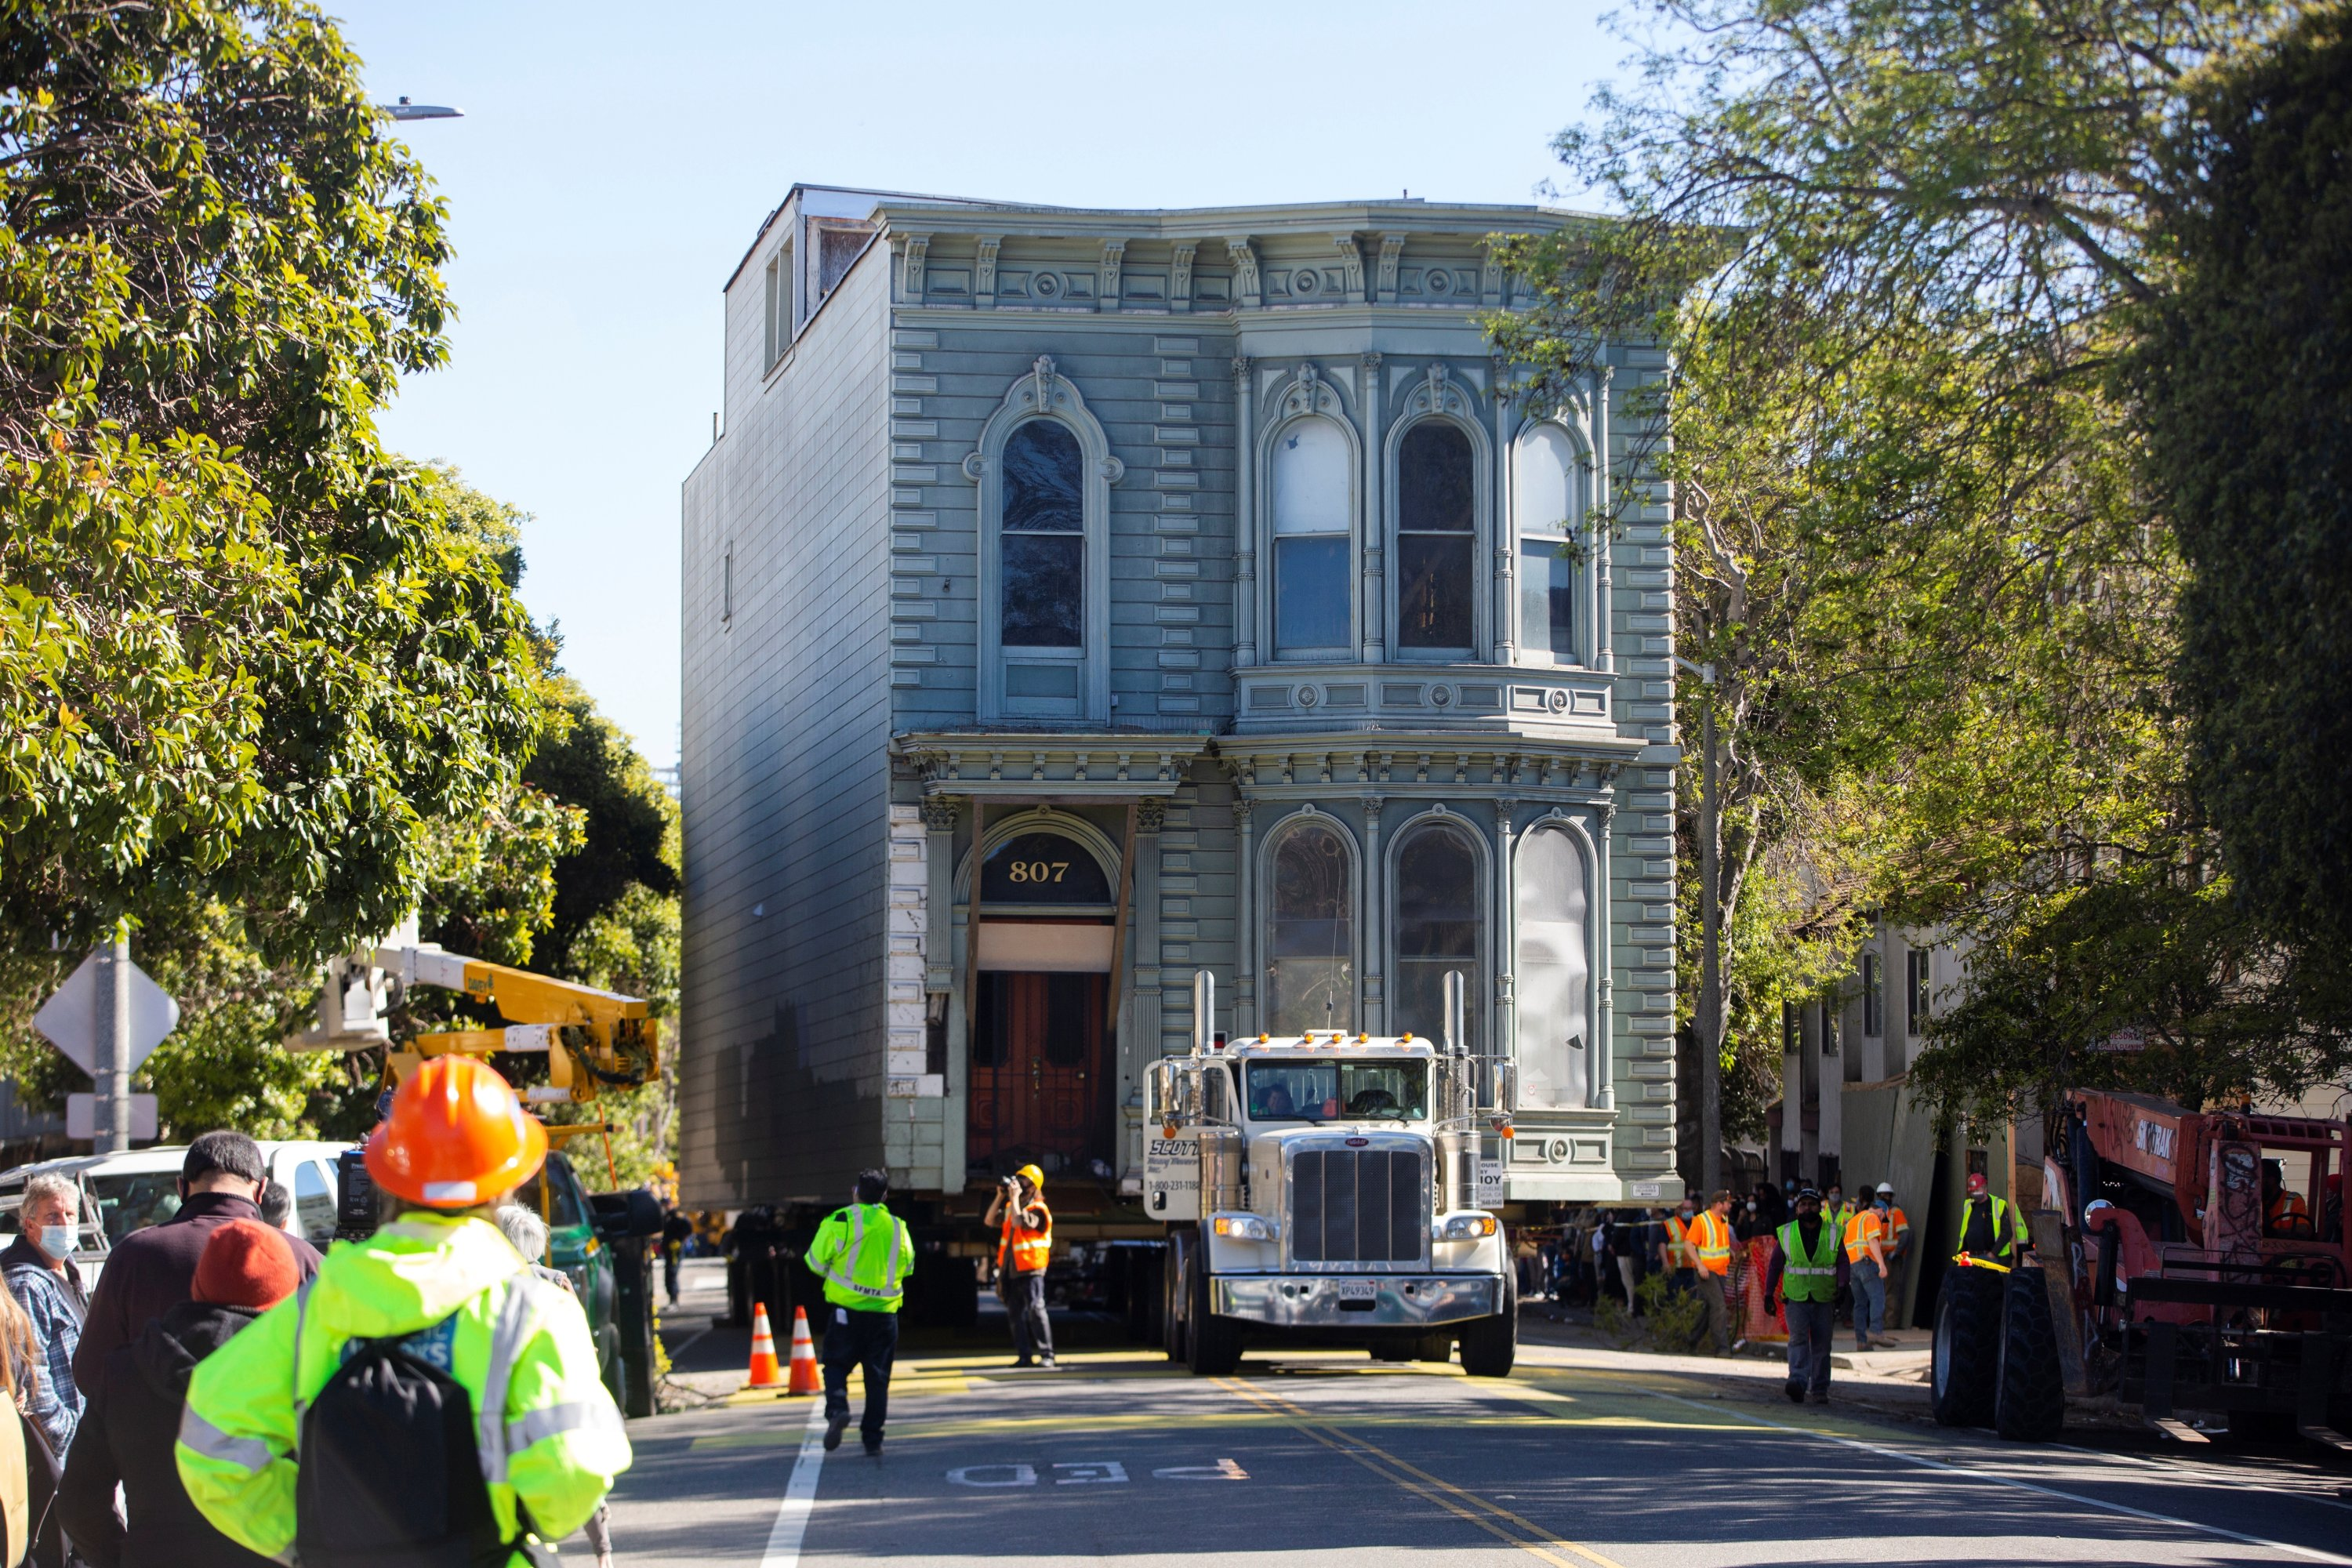 The 139-year-old Victorian house known as the Englander House is hoisted on a flat bed truck and pulled down Fulton Street towards its new location, as the original site is to be used to build a 48-unit, eight-story apartment building, in San Francisco, California, U.S. Feb. 21, 2021.  (Reuters Photo)